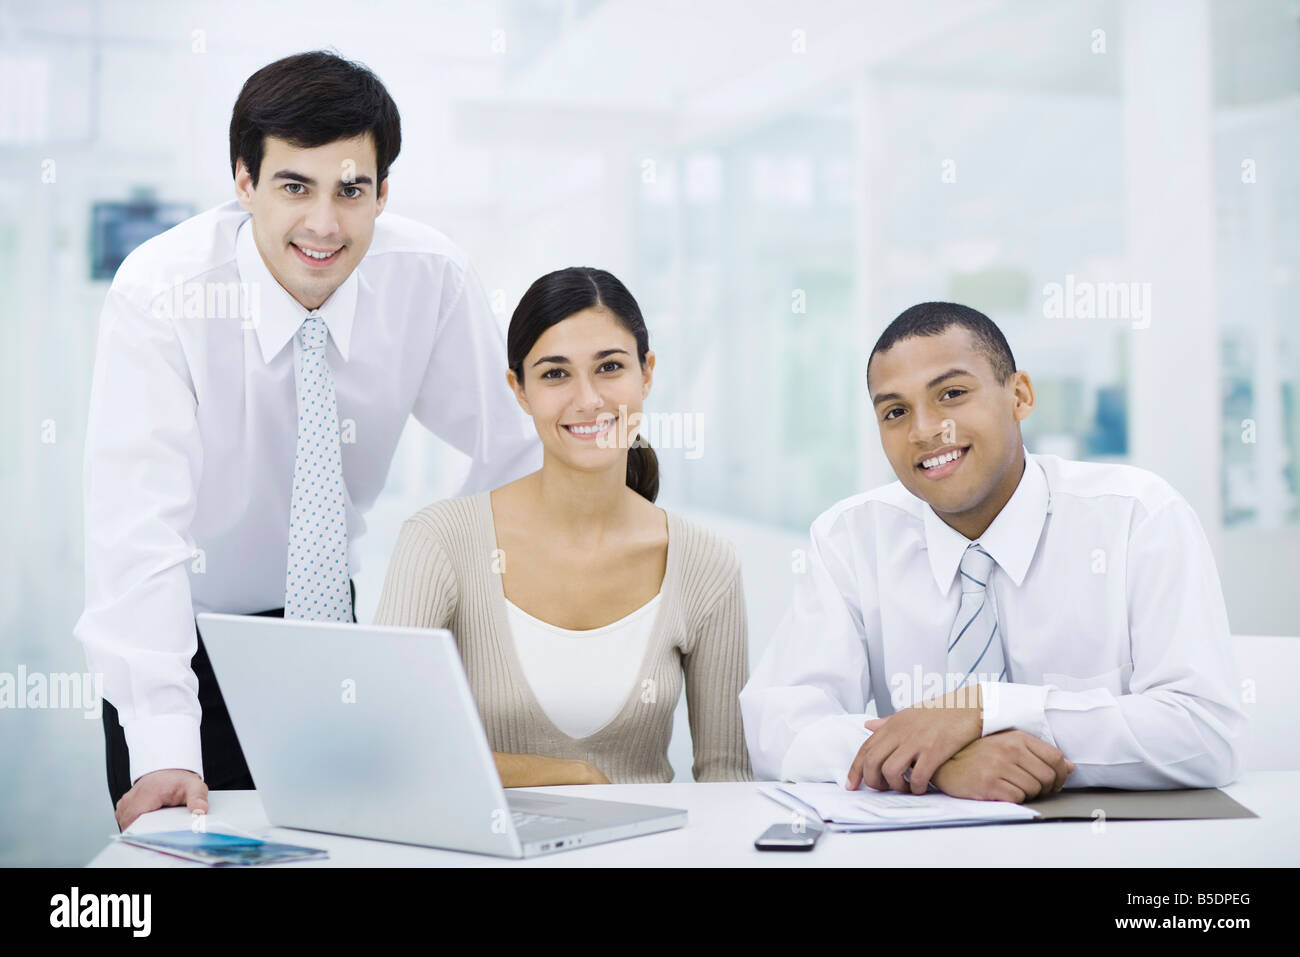 Professionals gathered around laptop computer, smiling at camera - Stock Image